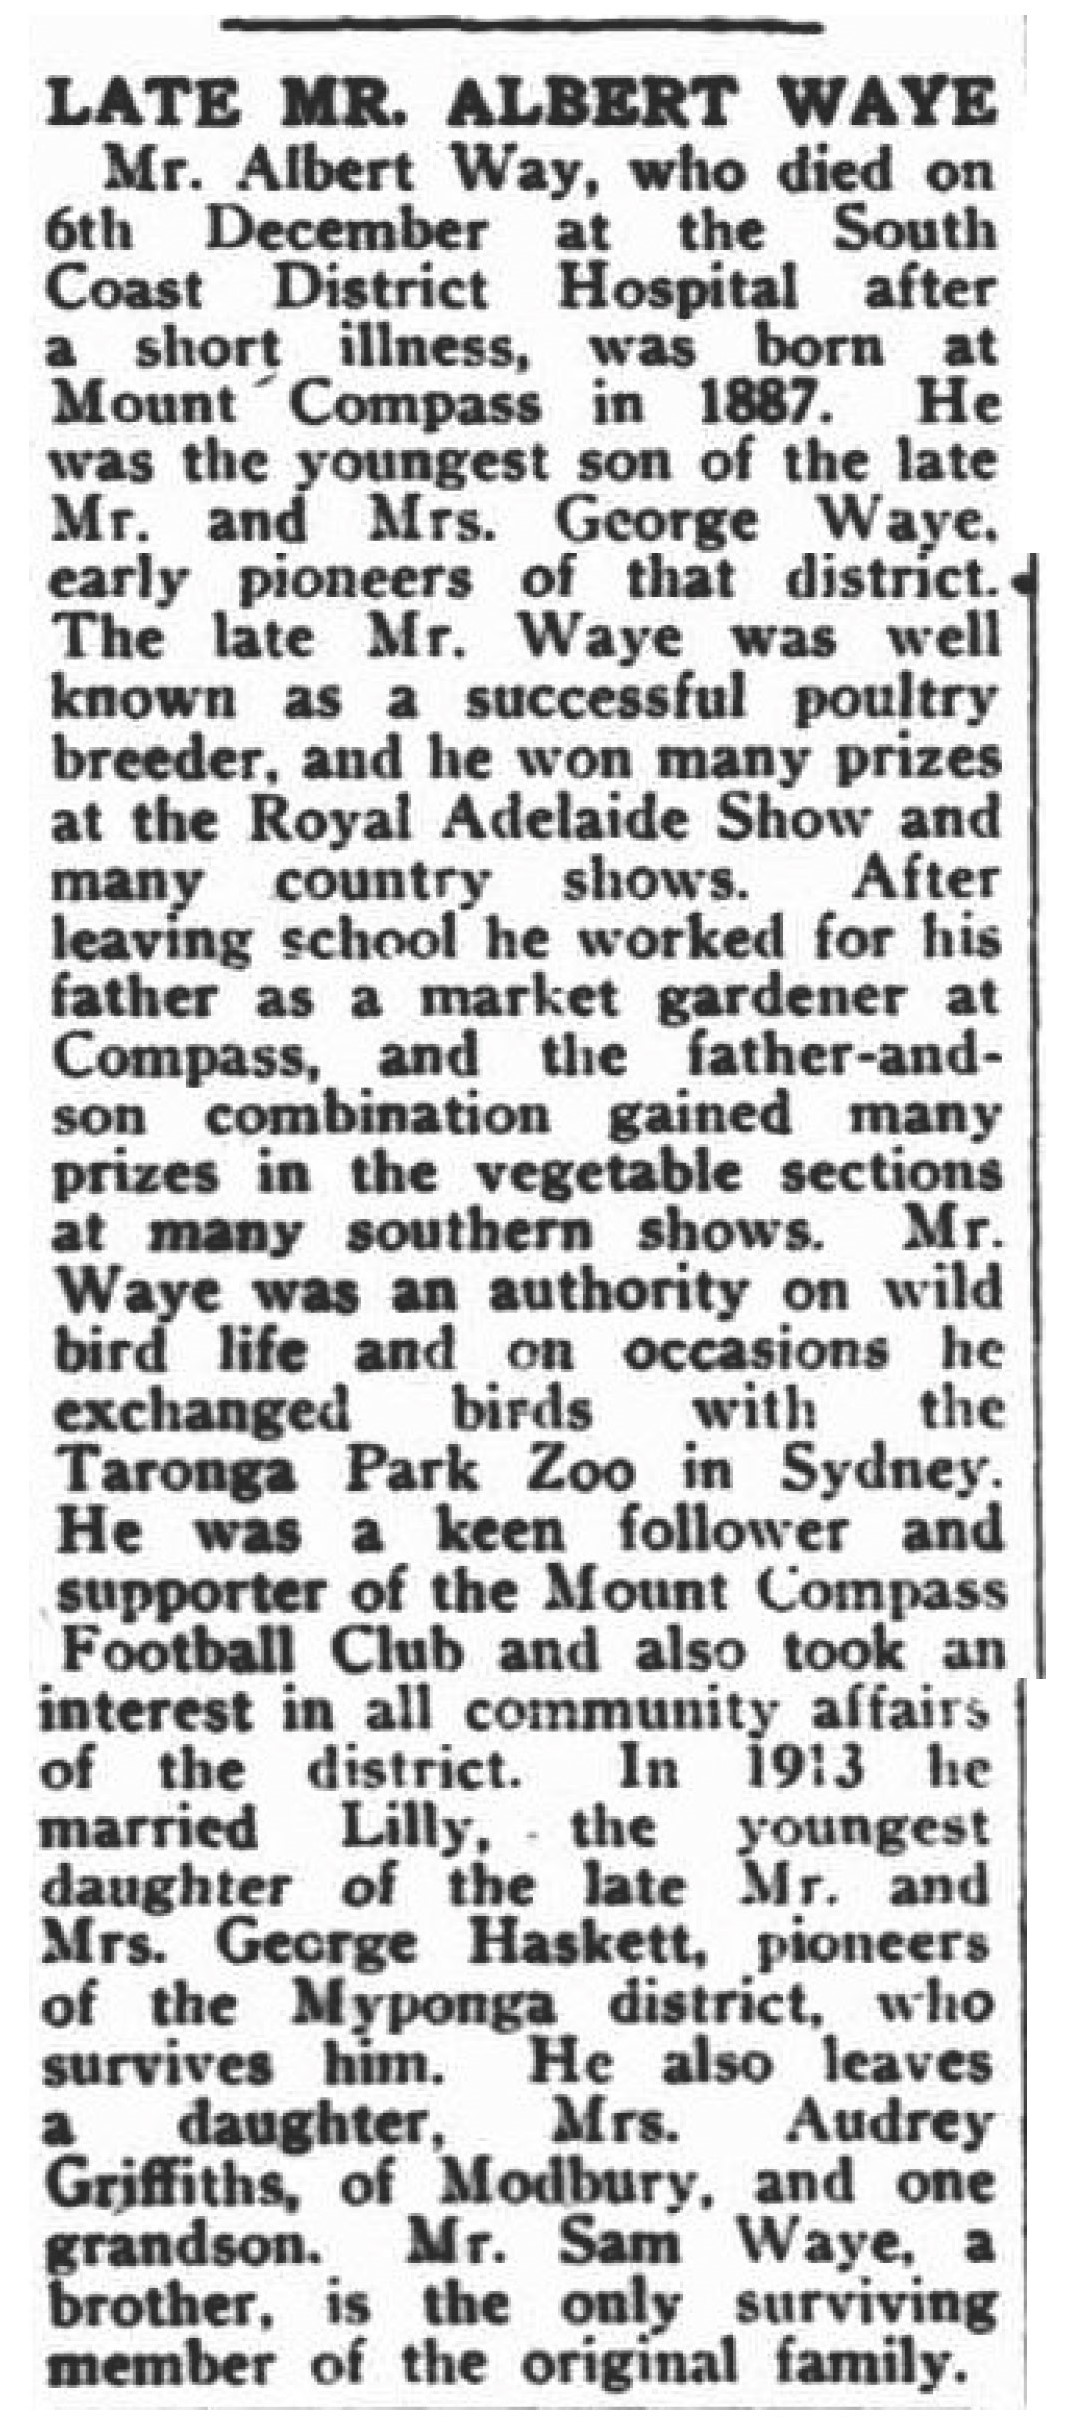 Obituary of Albert Waye: Victor Harbour Times, Friday 15 December 1961.